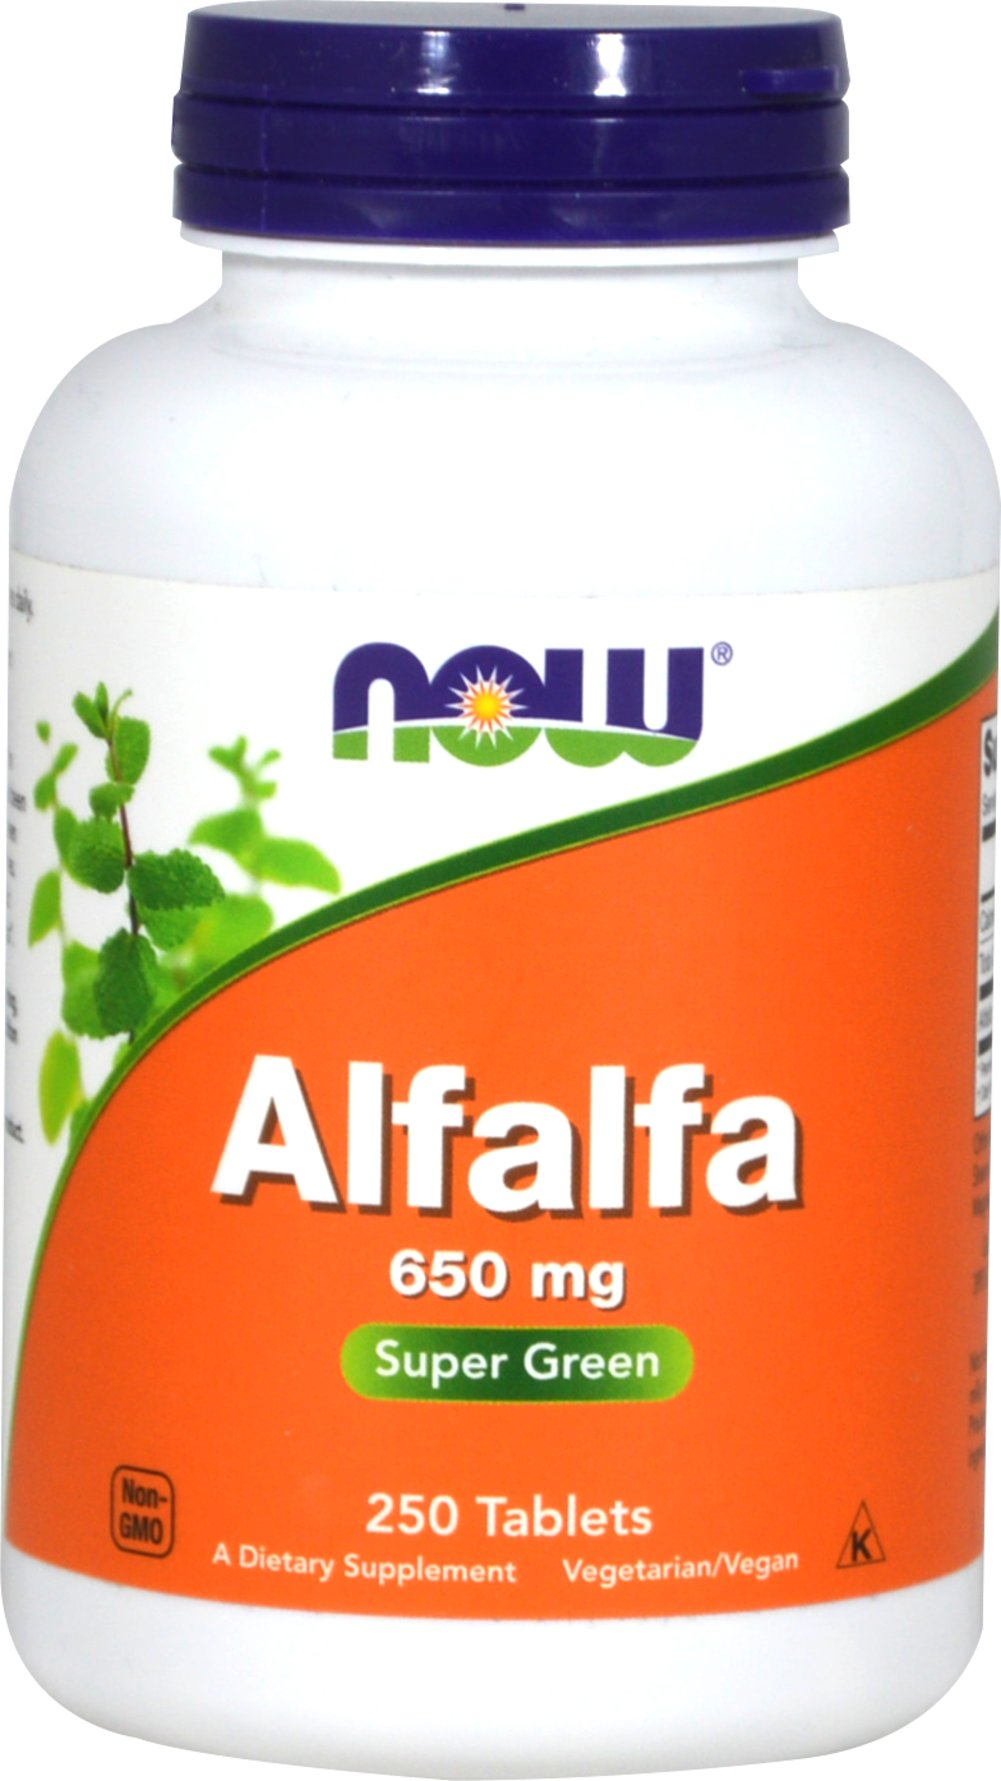 Alfalfa 650mg Tablets